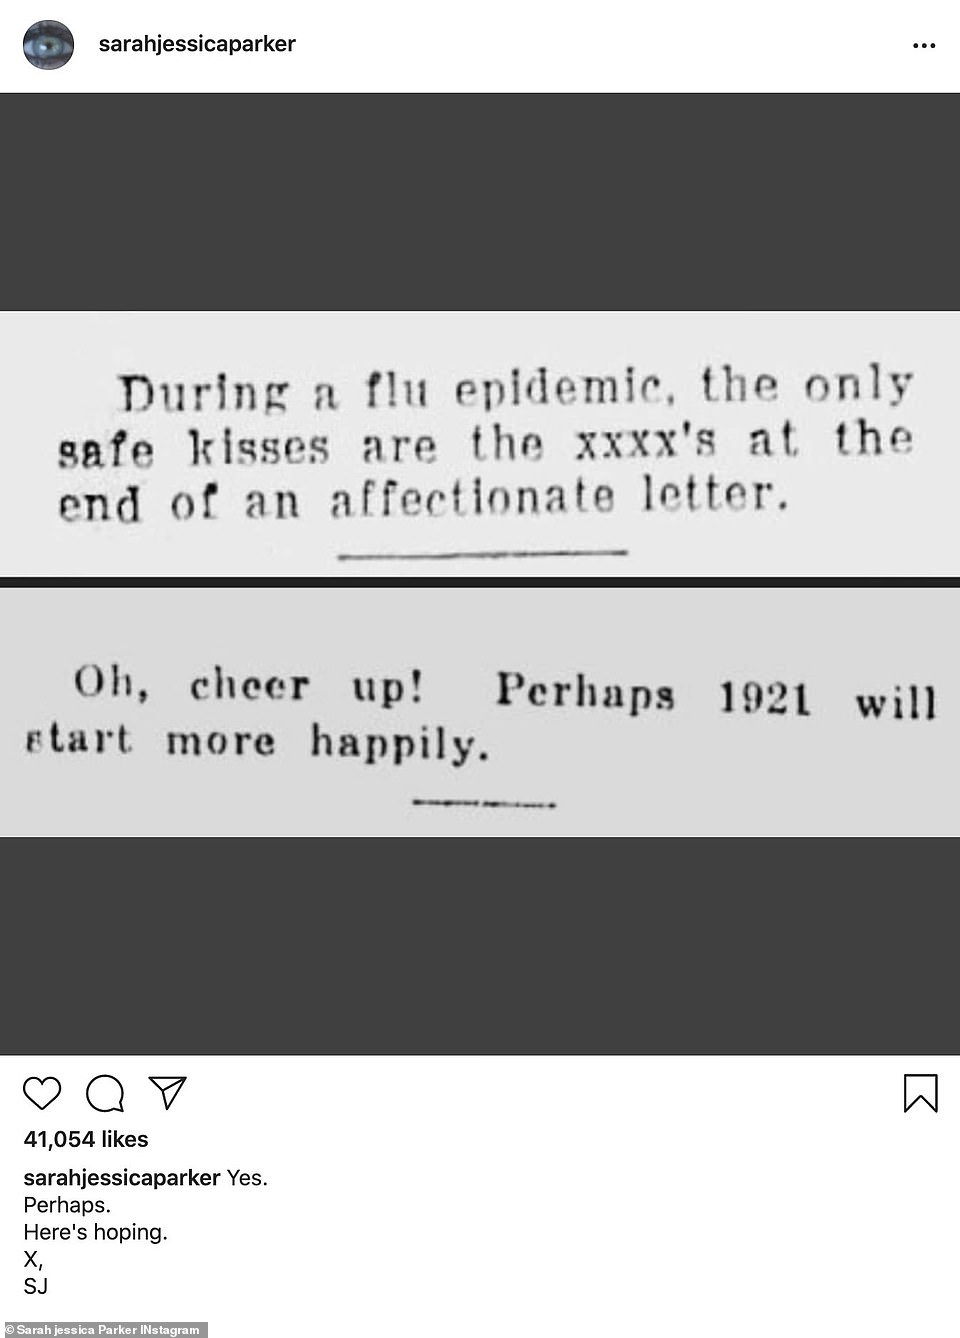 Hoping to go back 100 years:Sarah Jessica Parker made a post about how 1921 might be a better year